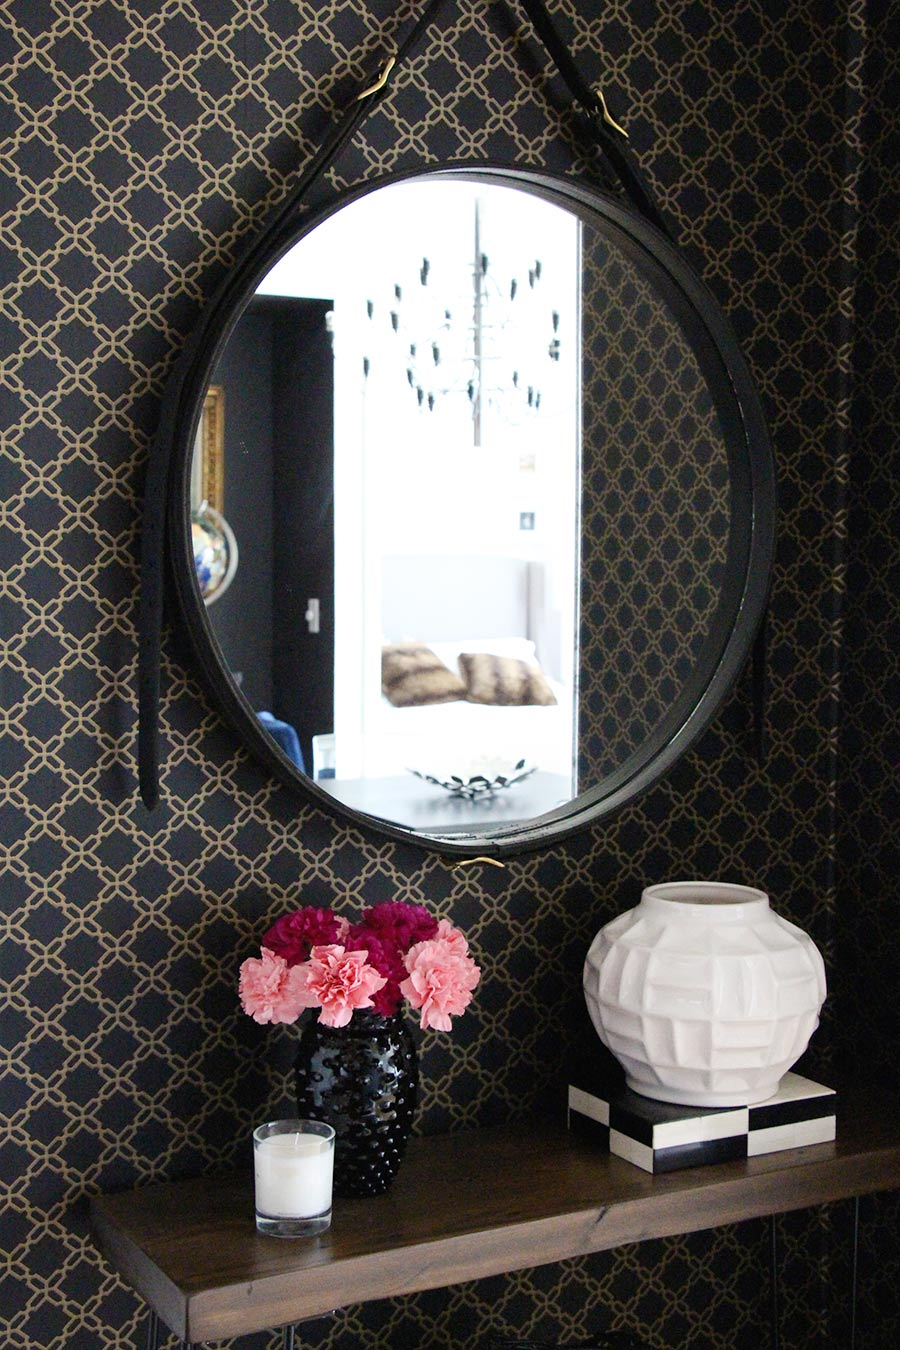 chic-equestrian-mirror-small-spaces-dc-interior-design.jpg